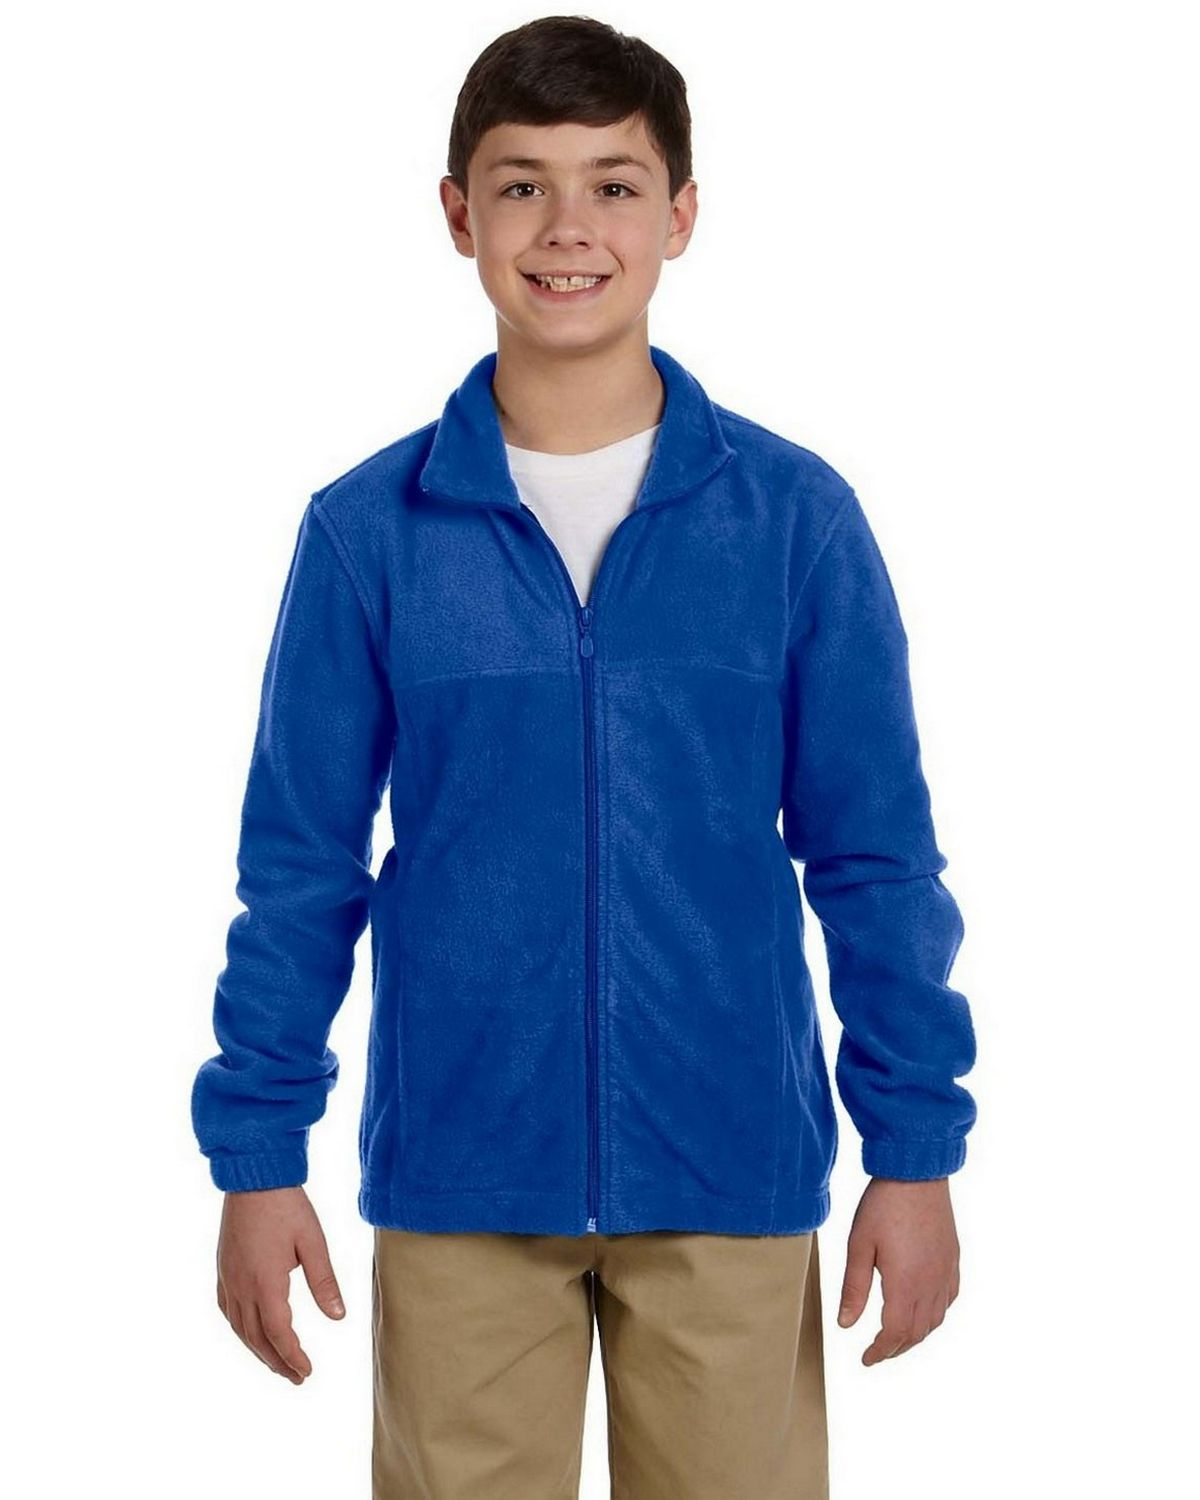 Harriton youth M990Y Full-Zip Fleece - True Royal - S M990Y